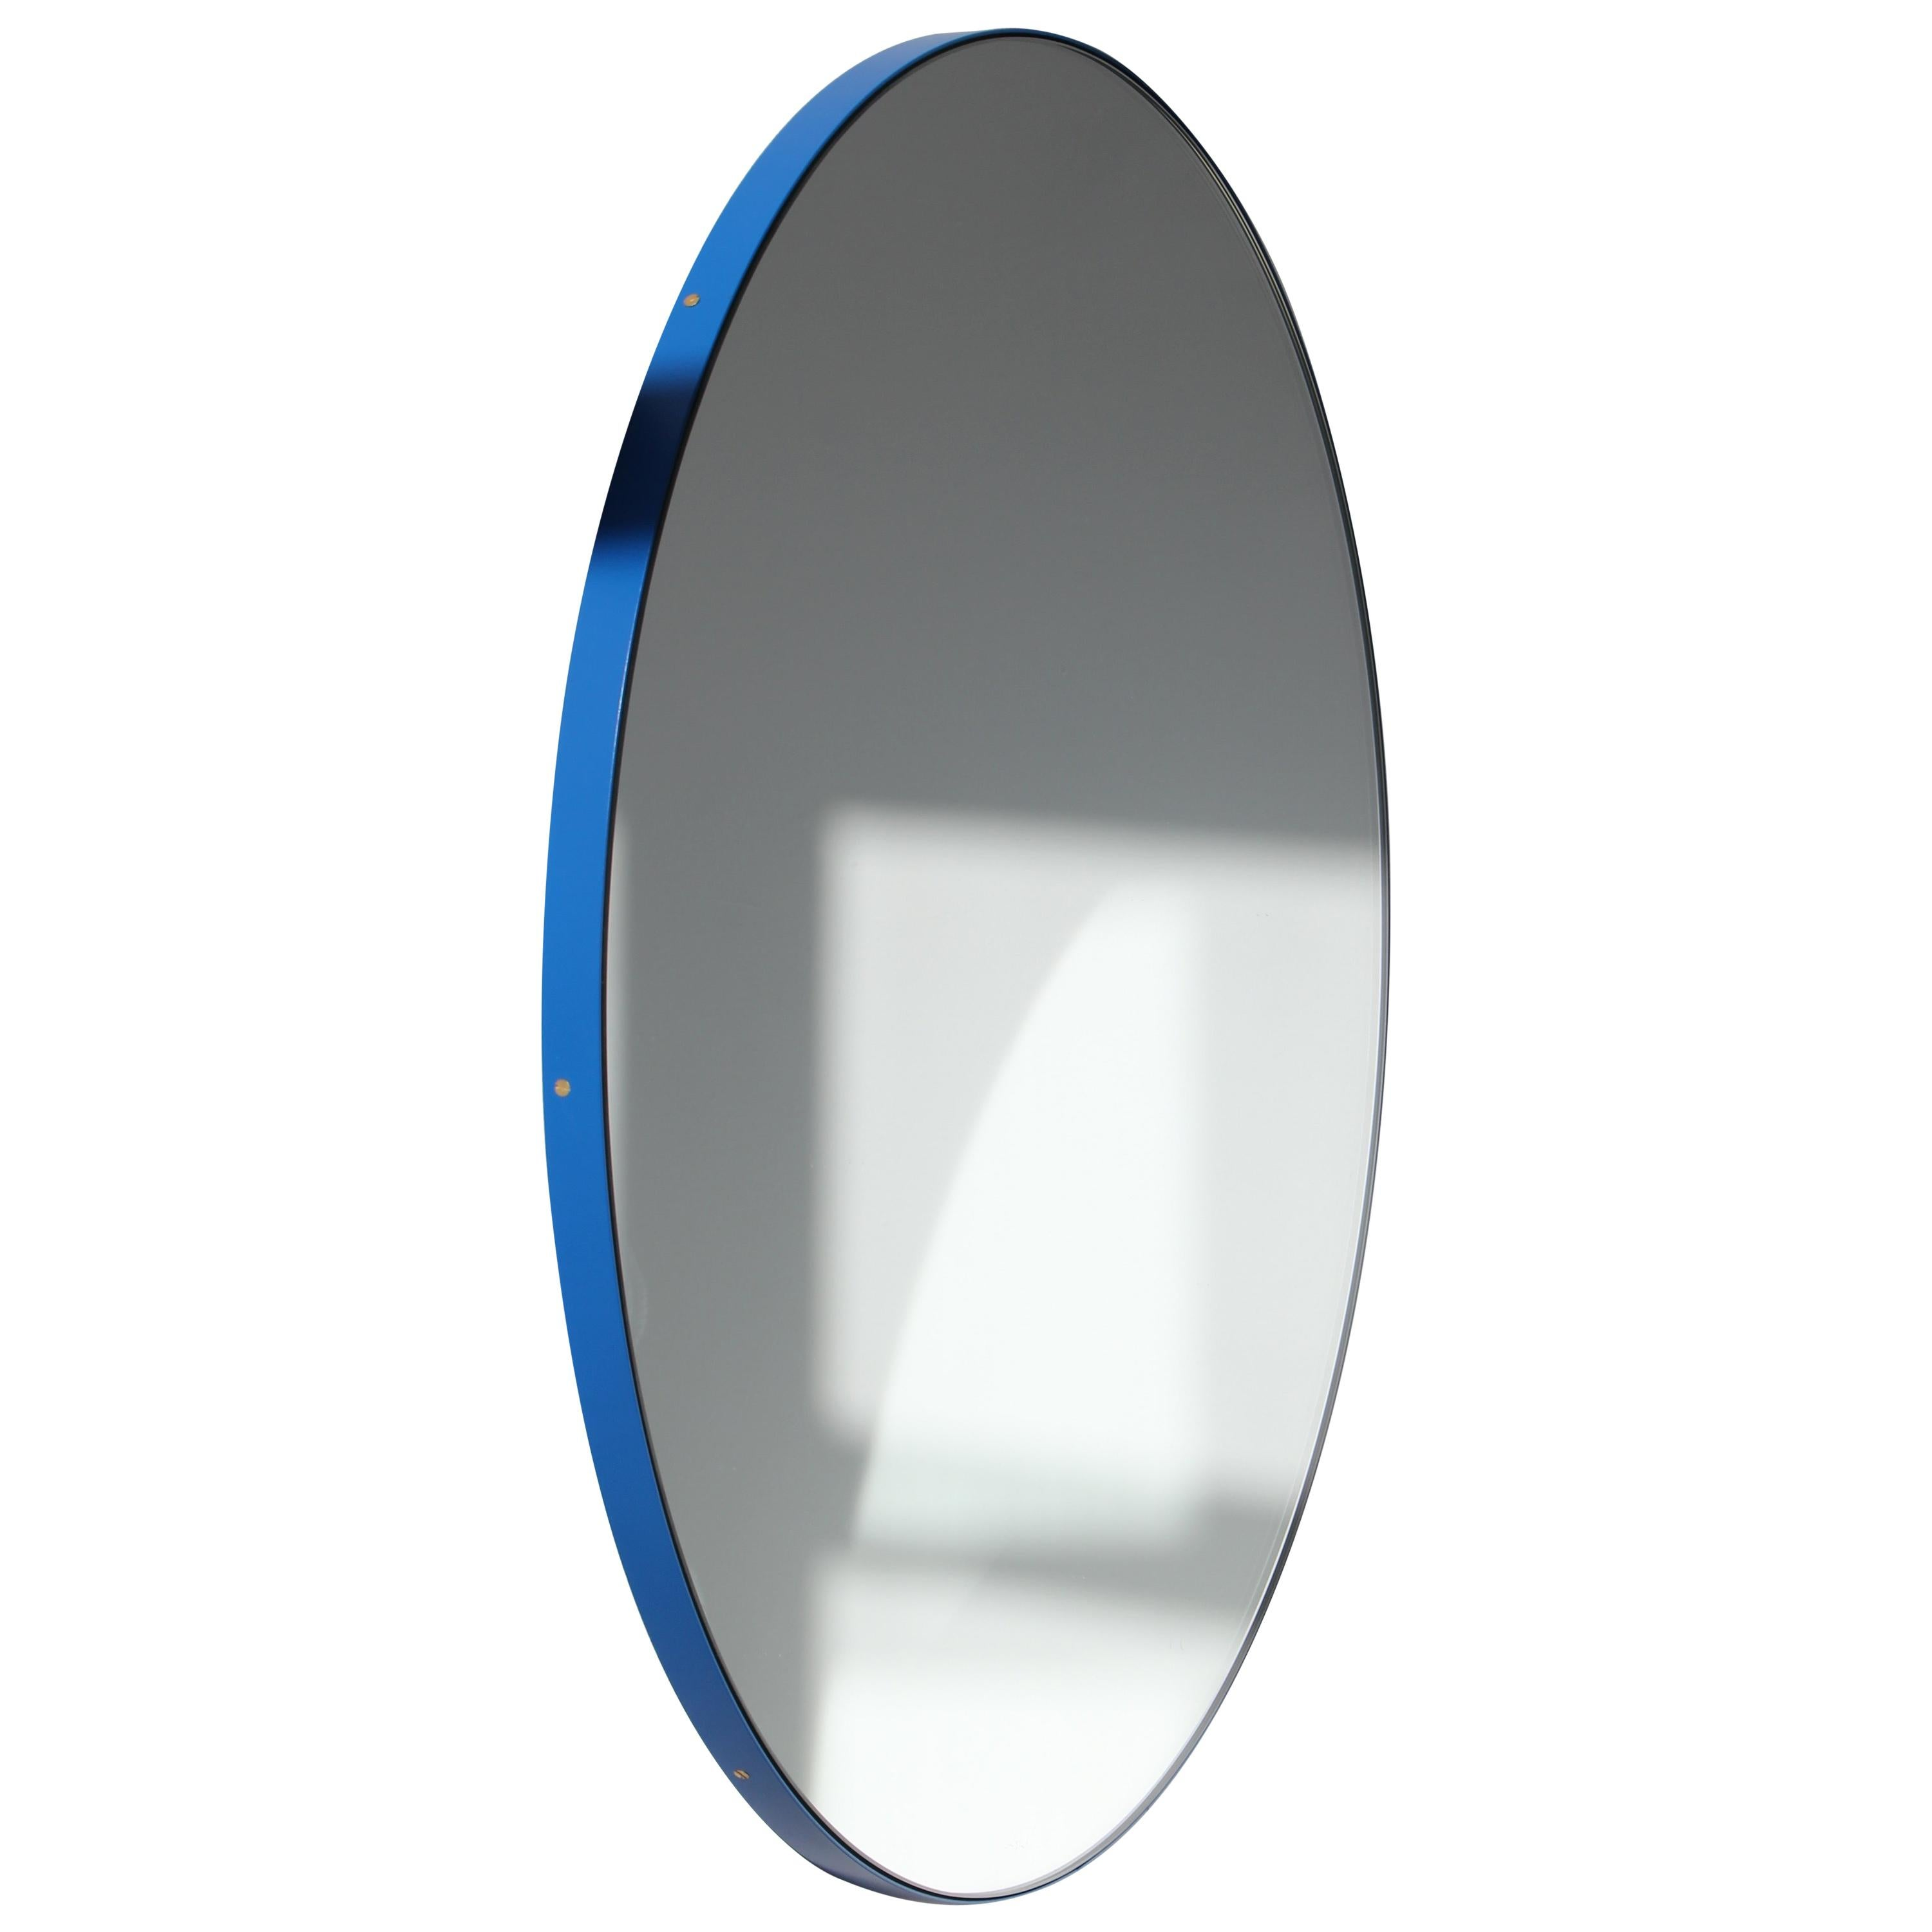 Orbis™ Round Modern Contemporary Mirror with Blue Frame - Small